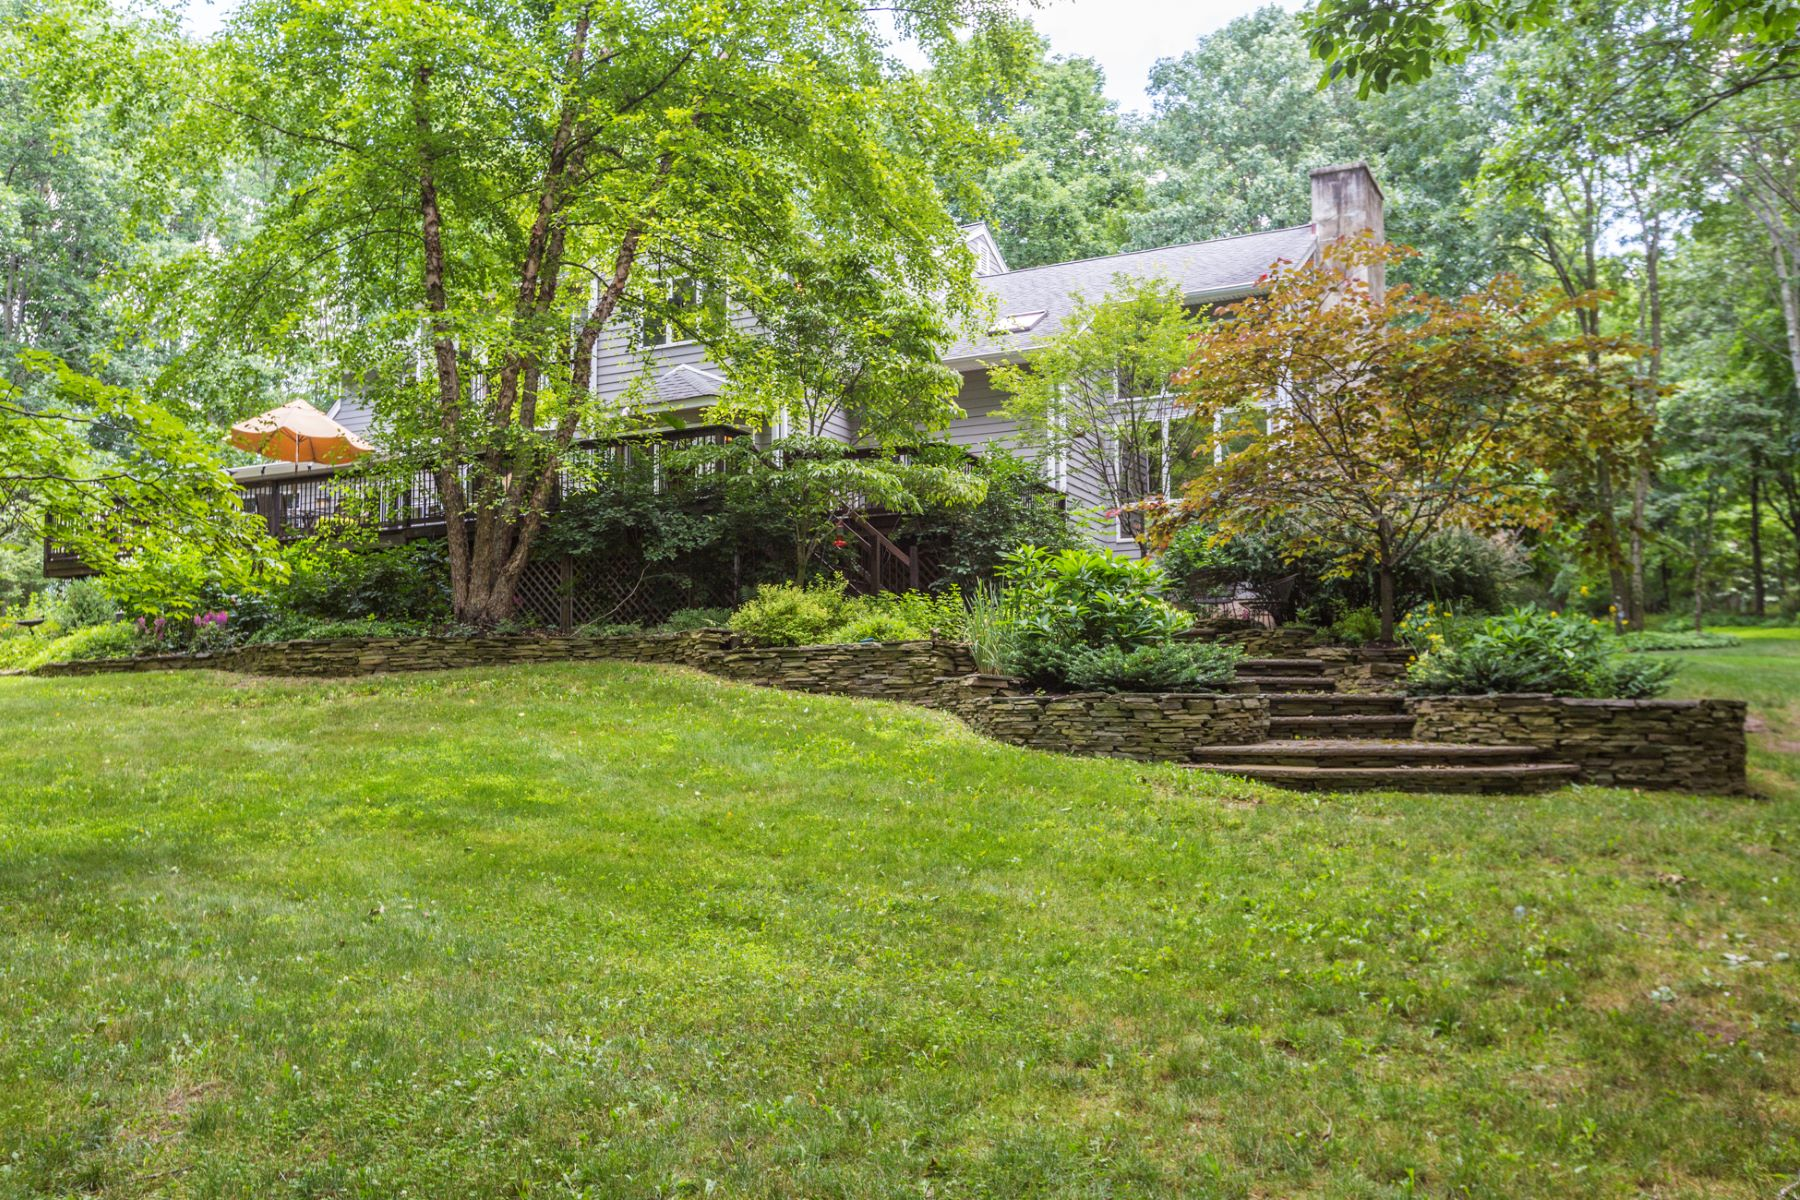 Additional photo for property listing at From Simple Pleasures to Ultimate Luxuries - Montgomery Township 54 Sourland Hills Road Skillman, Nueva Jersey 08558 Estados Unidos